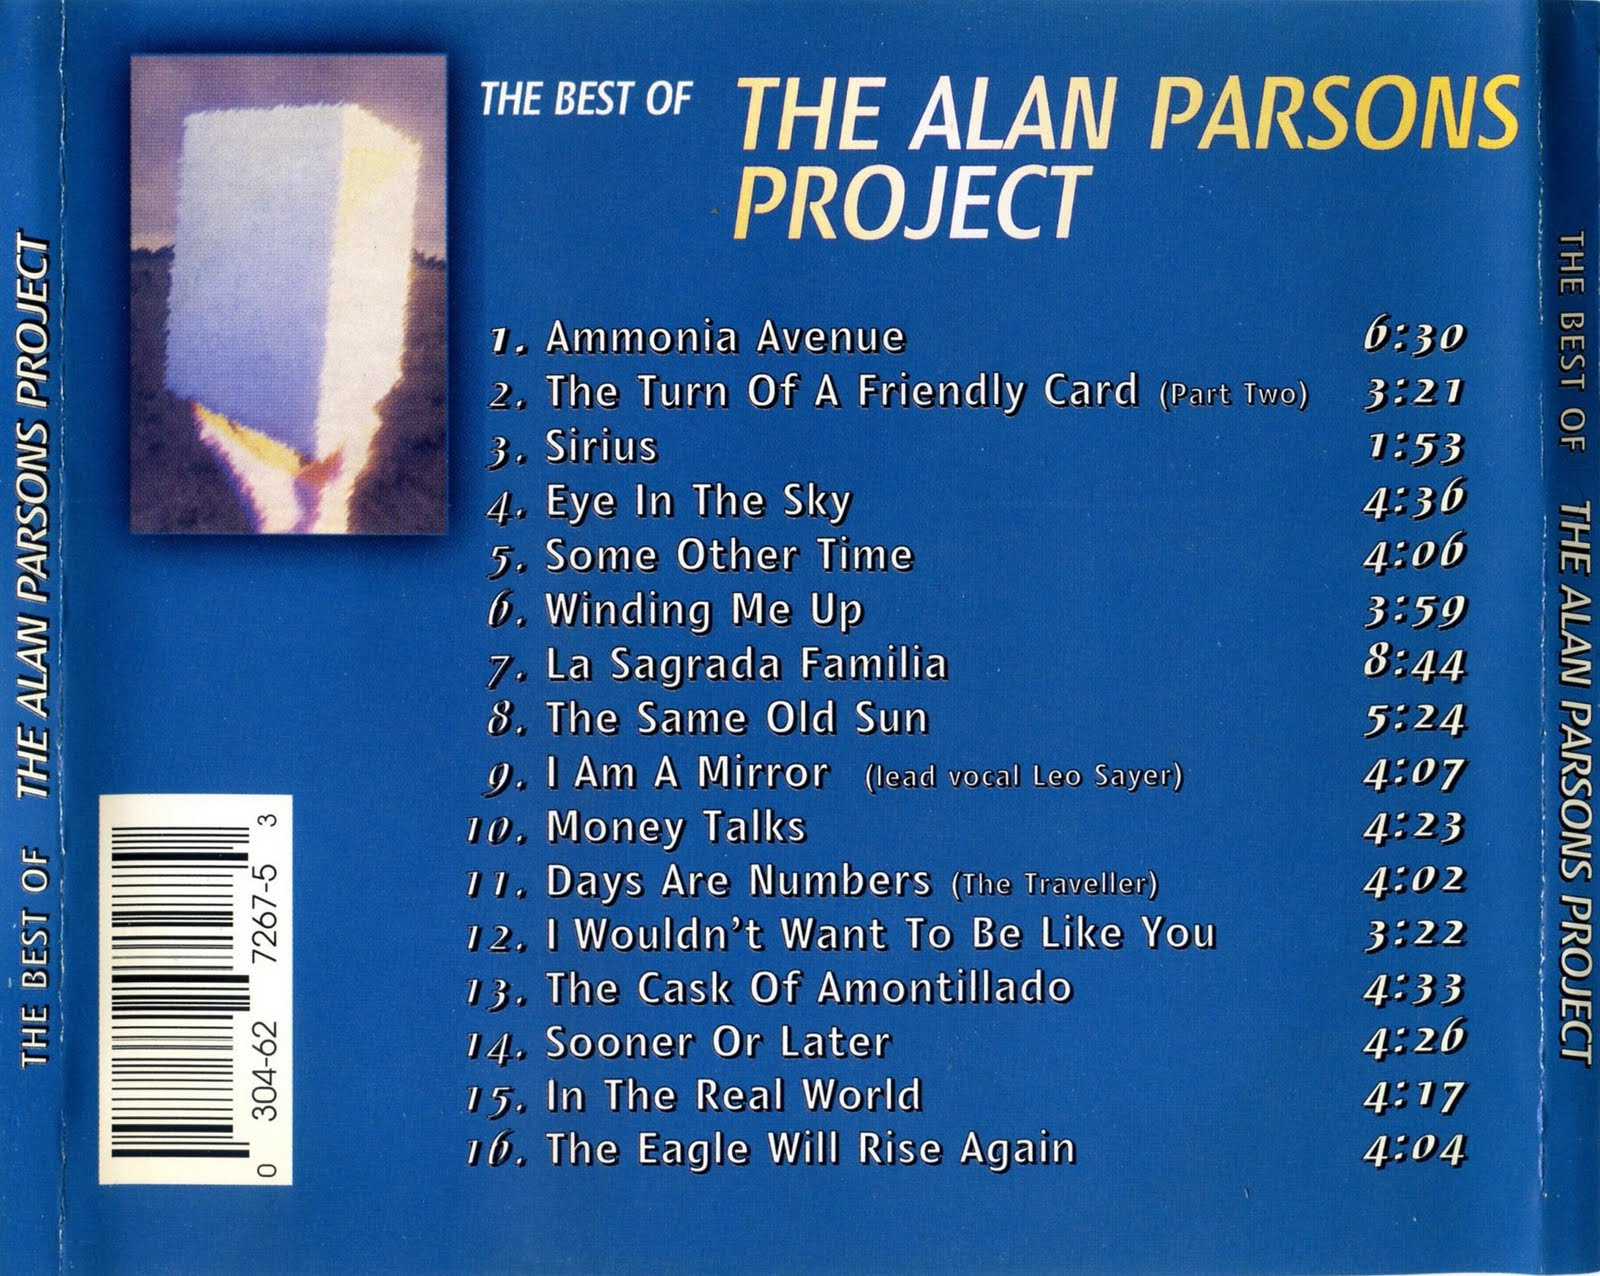 the alan parsons project sirius